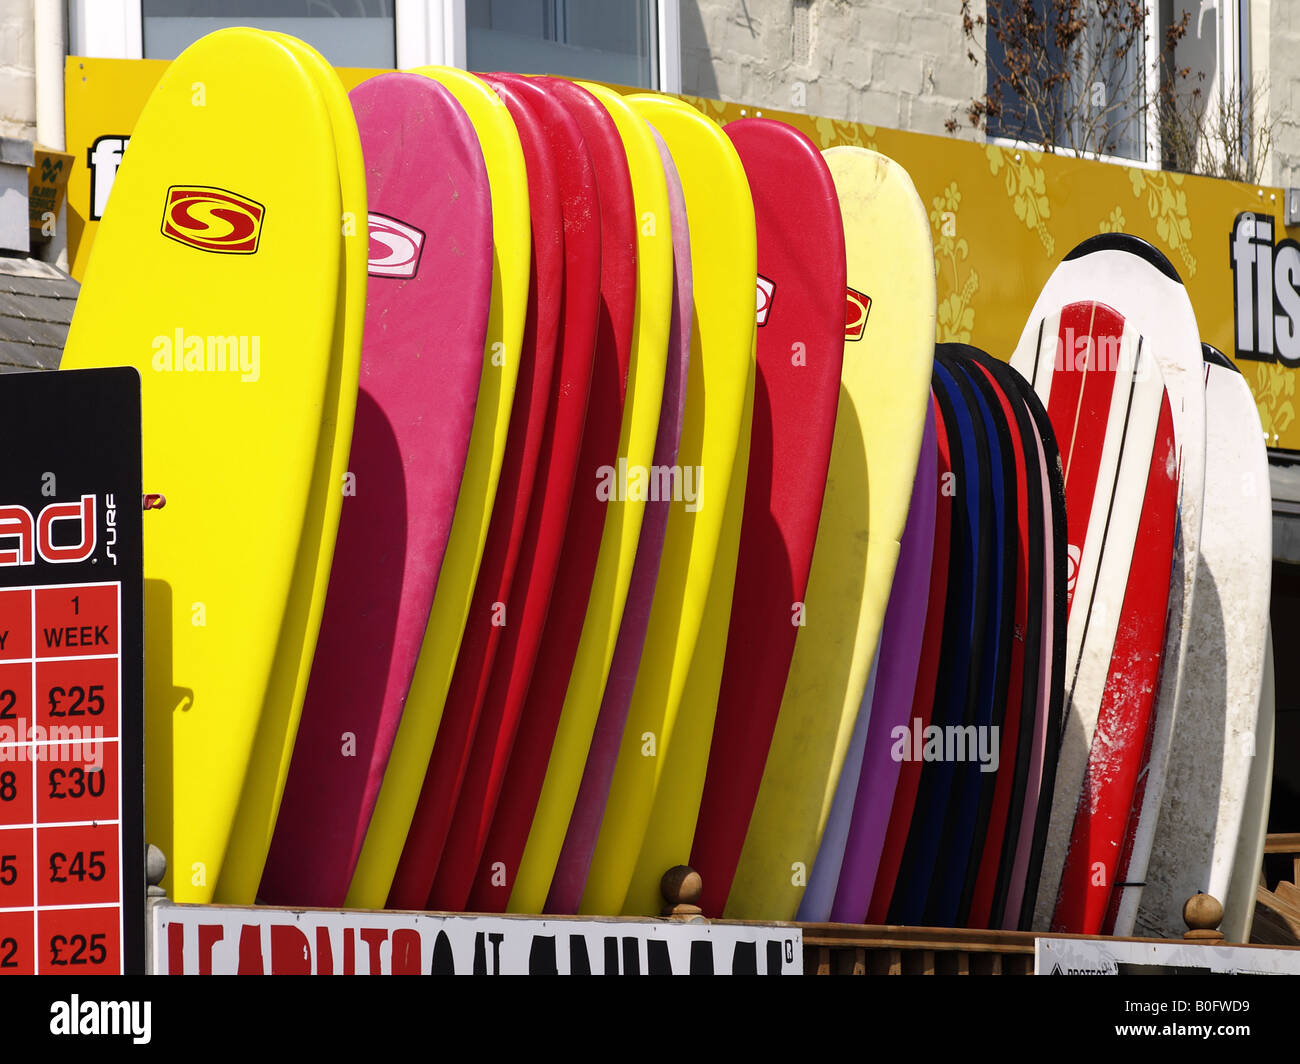 Surfboards Row Stock Photos & Surfboards Row Stock Images - Alamy